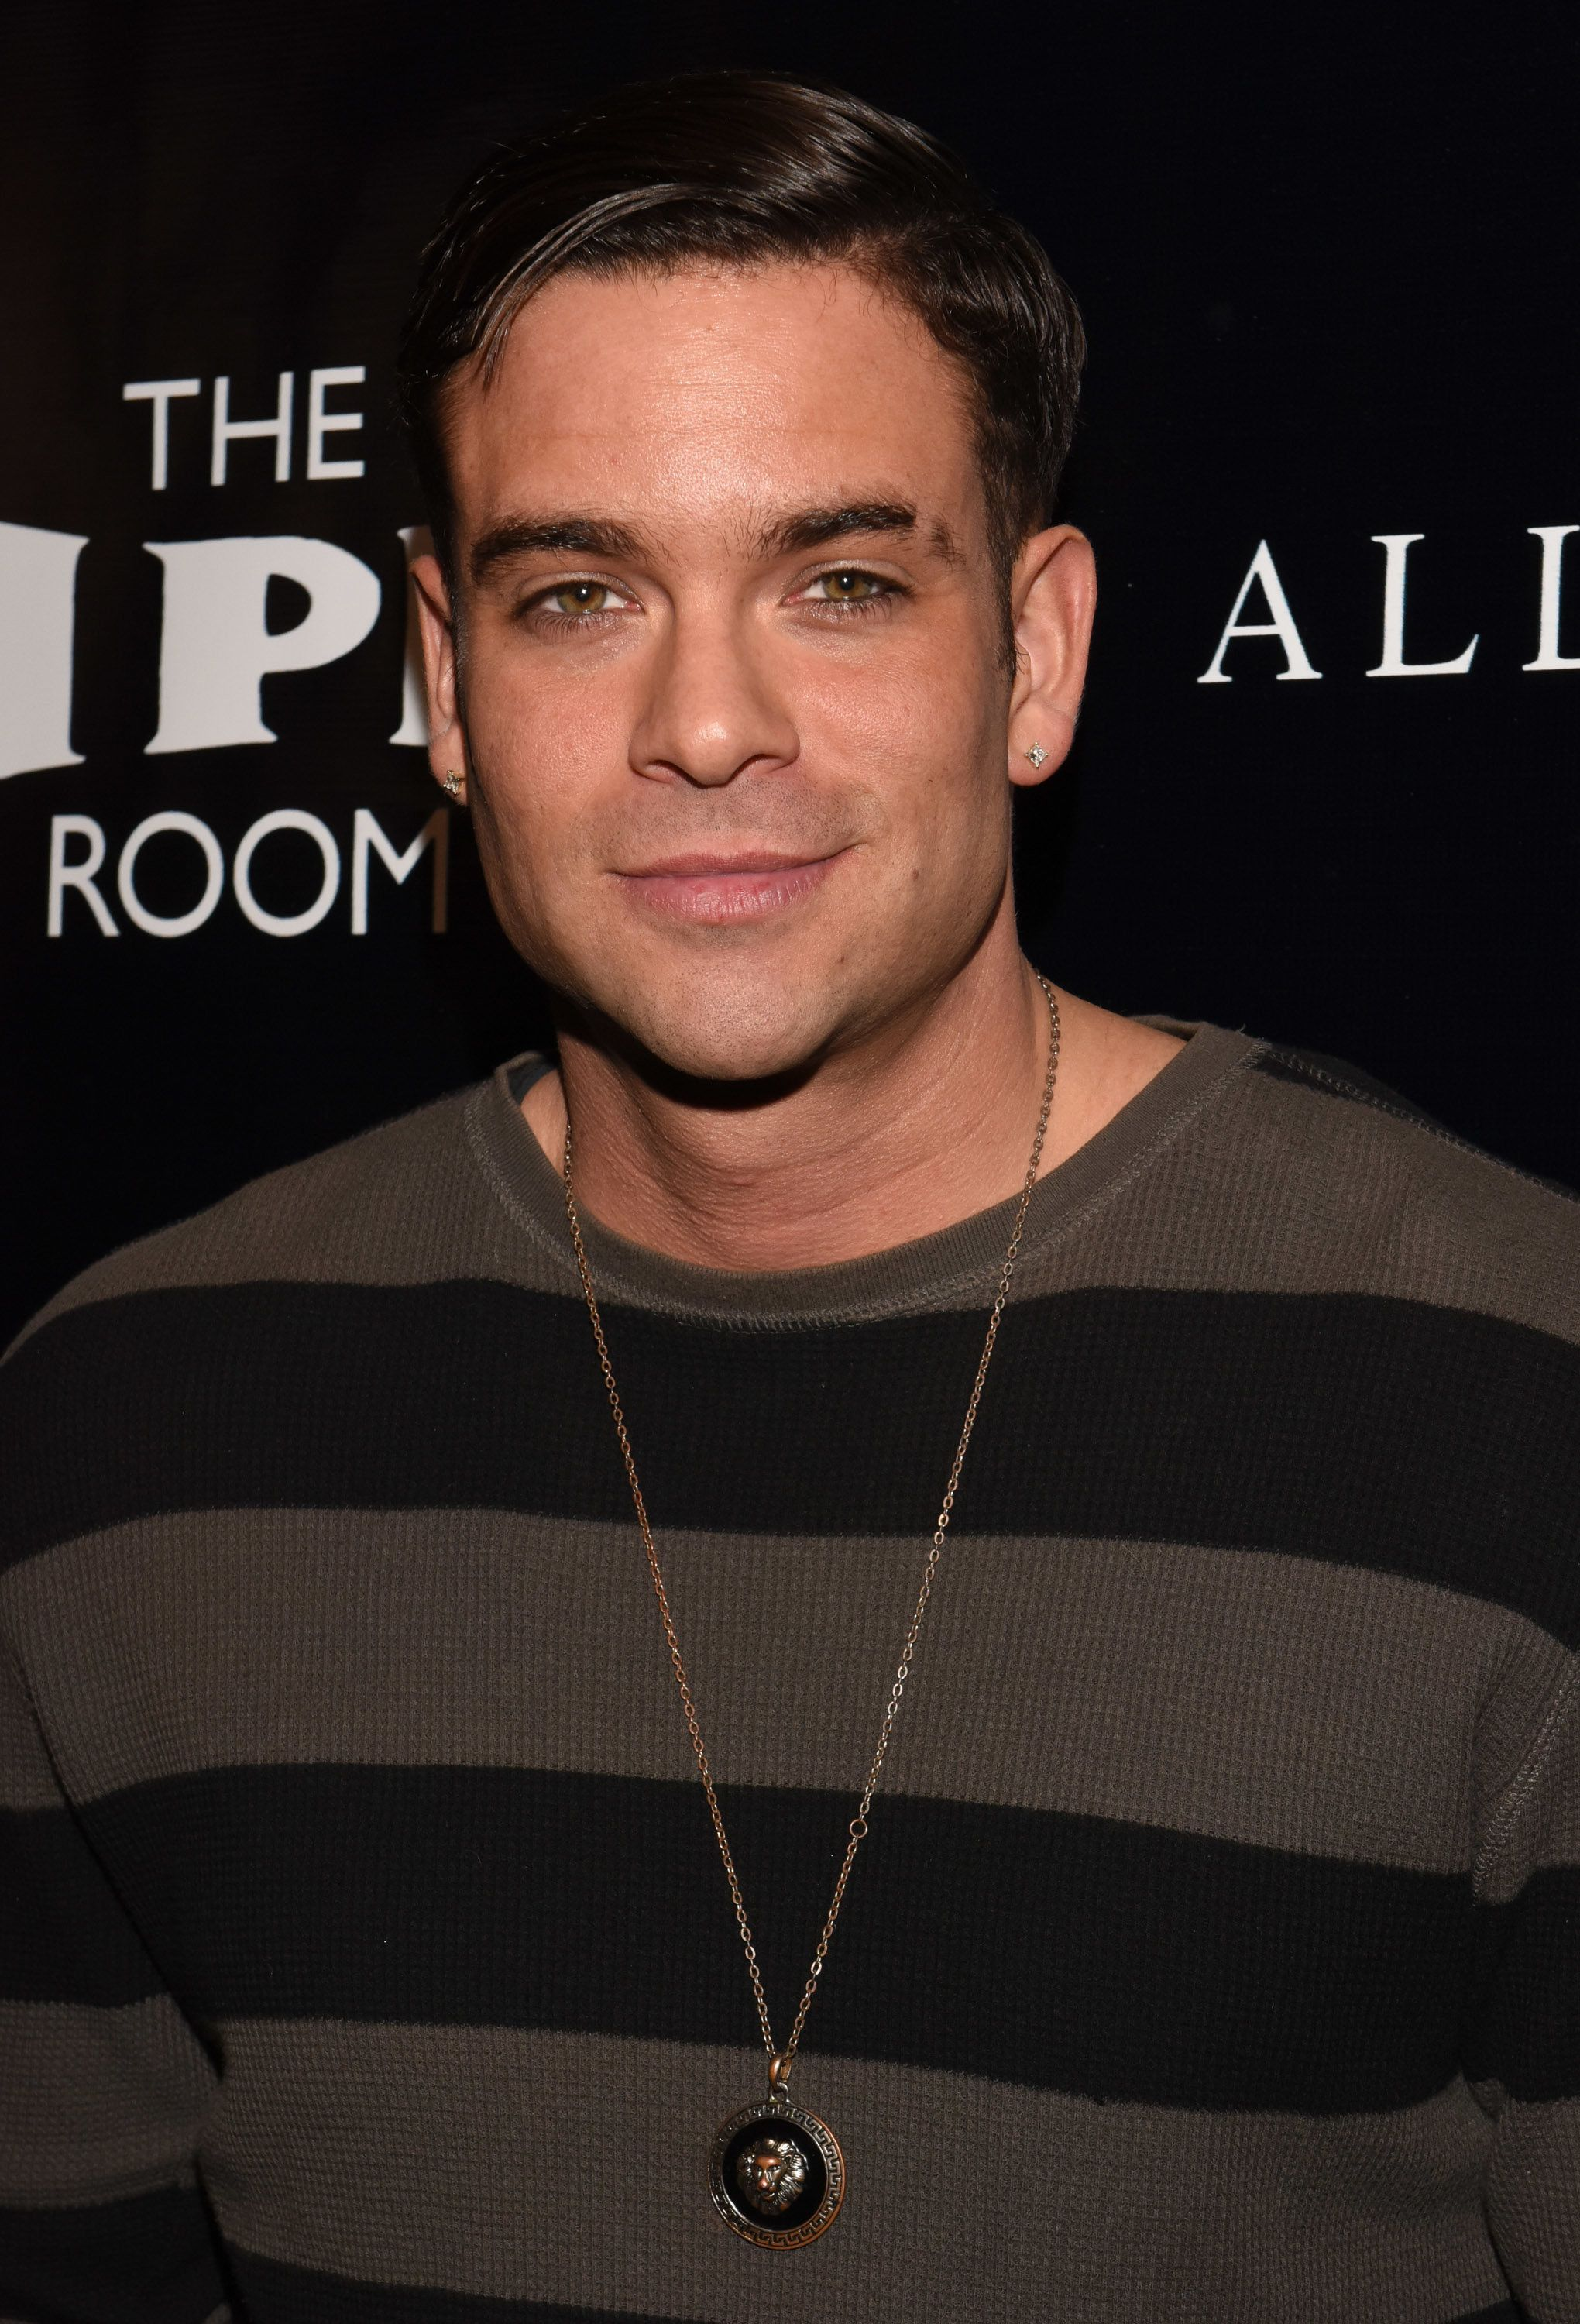 Mark Salling attends an event in